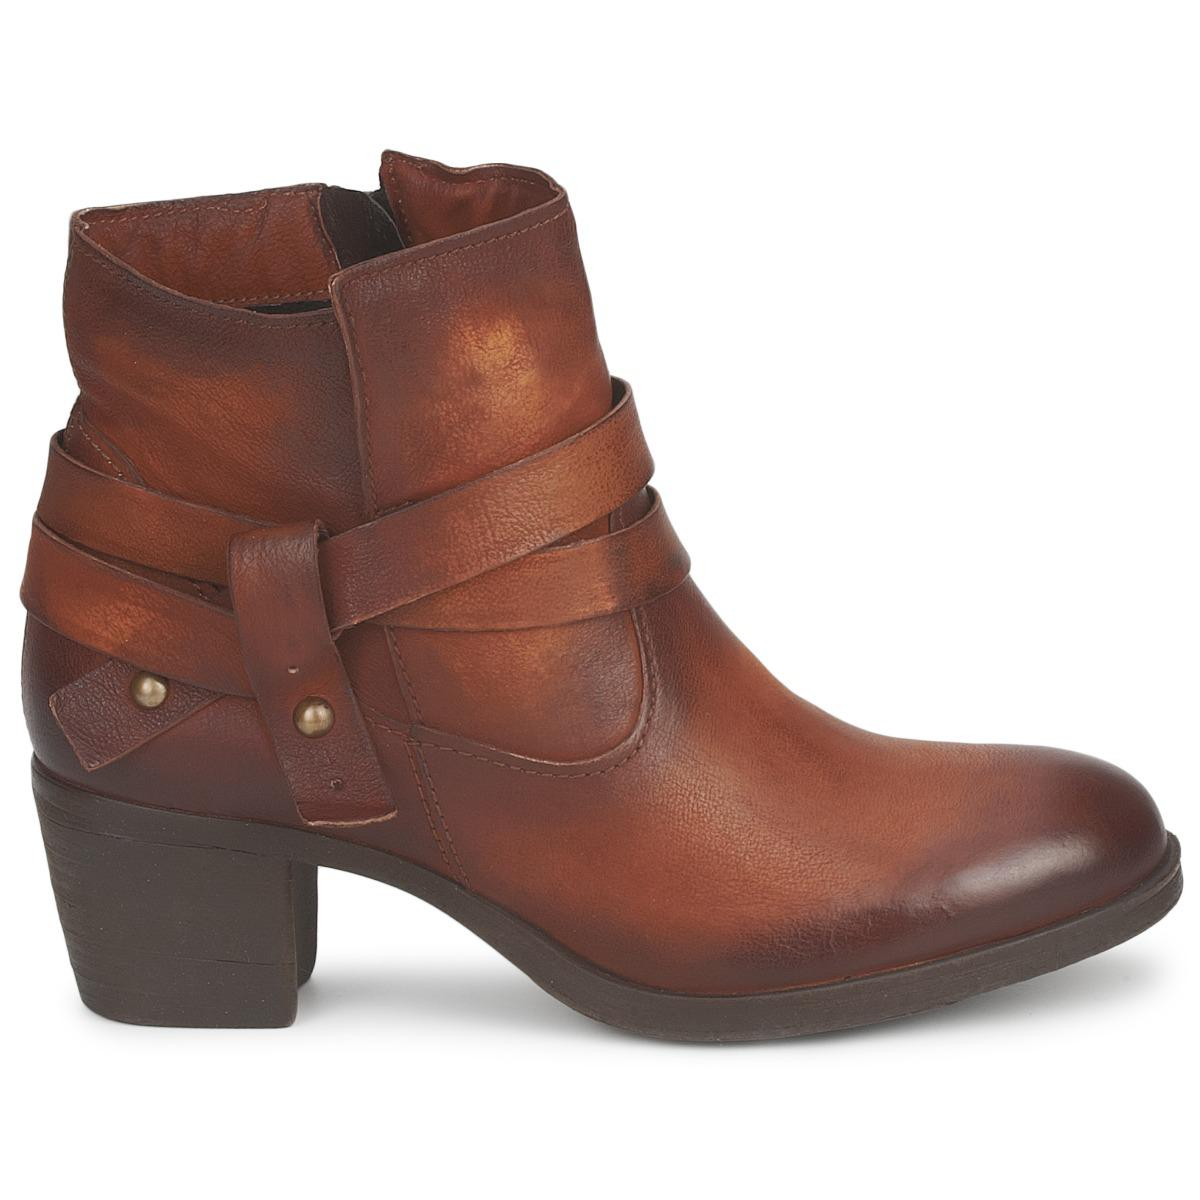 Dream in Green Leather Neltone Women's Low Boots In Brown